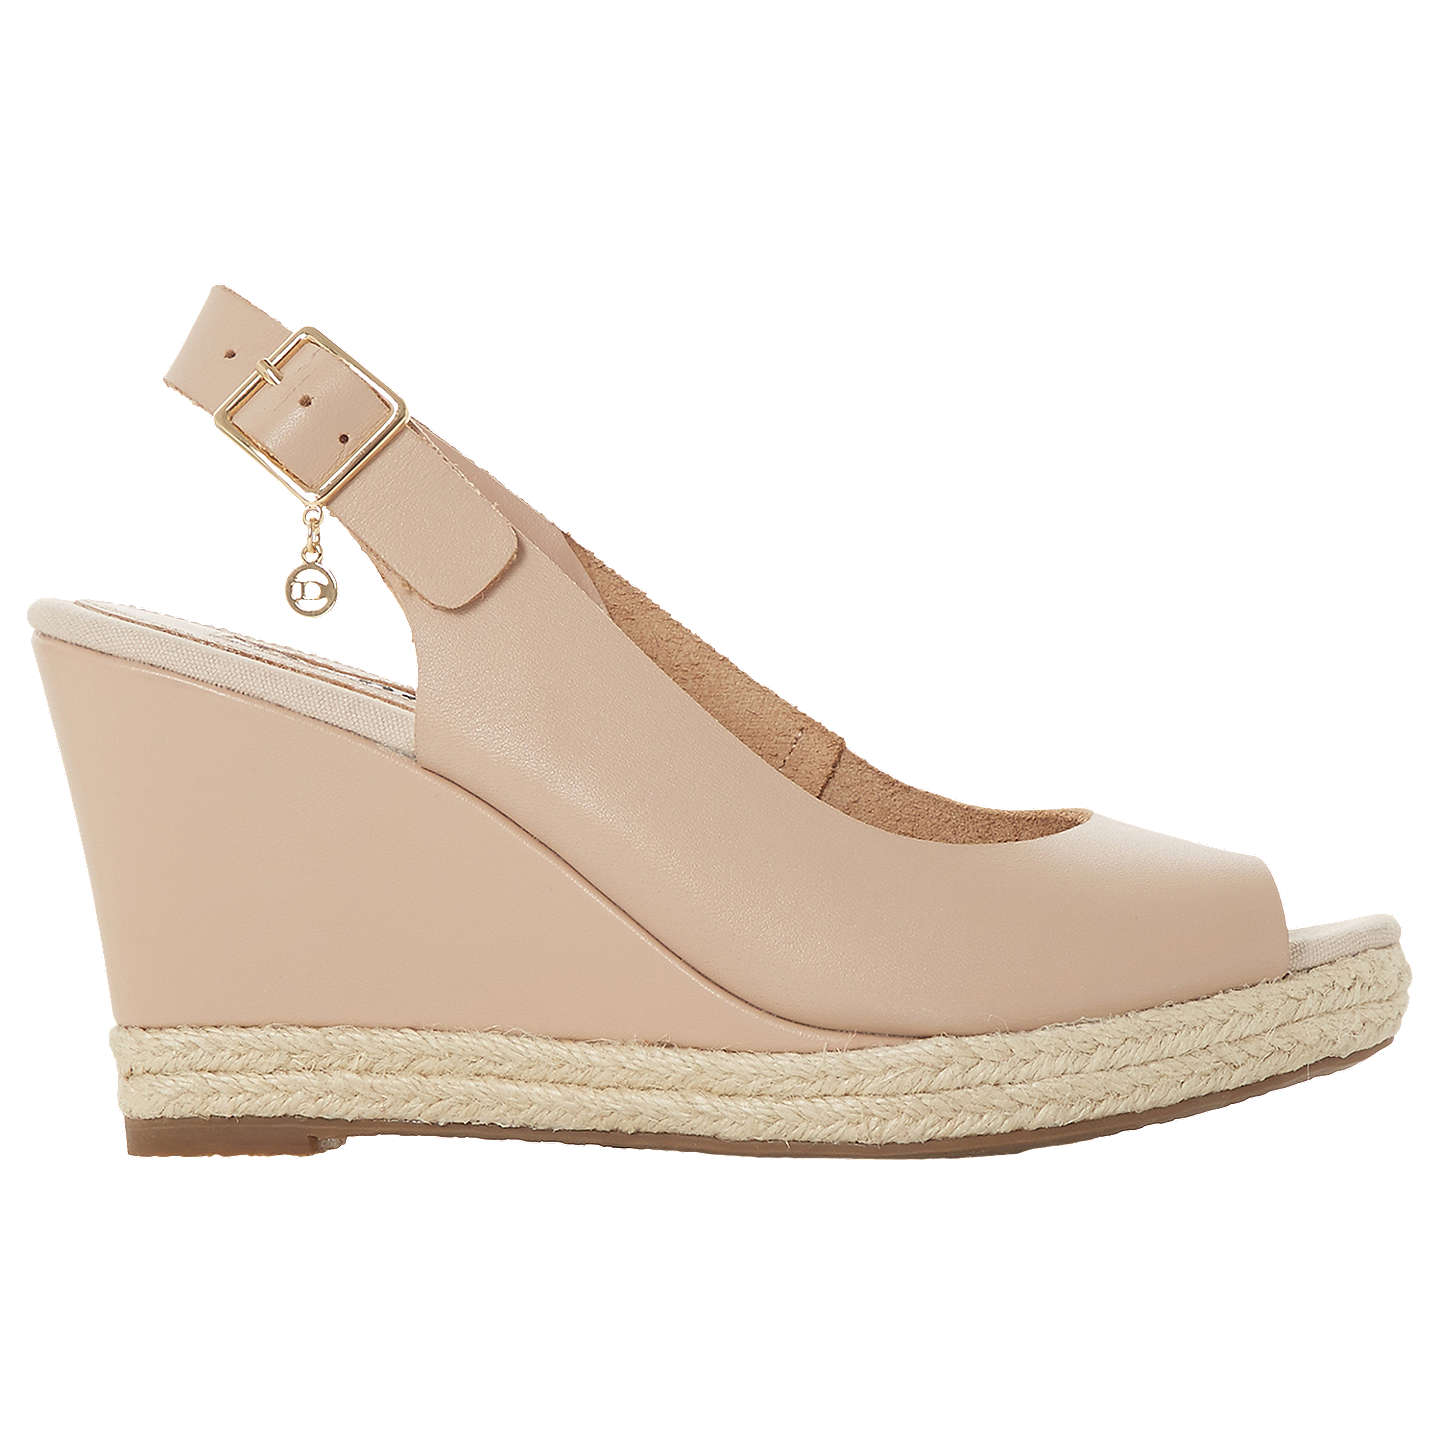 BuyDune Klicks Wedge Heel Sandals, Nude, 5 Online at johnlewis.com